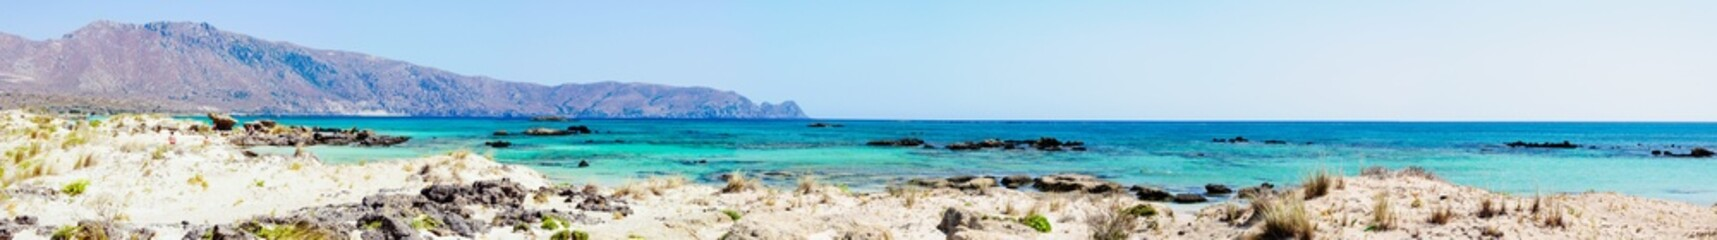 Elafonissi beach, white sand and turquoise water, Crete, Greece